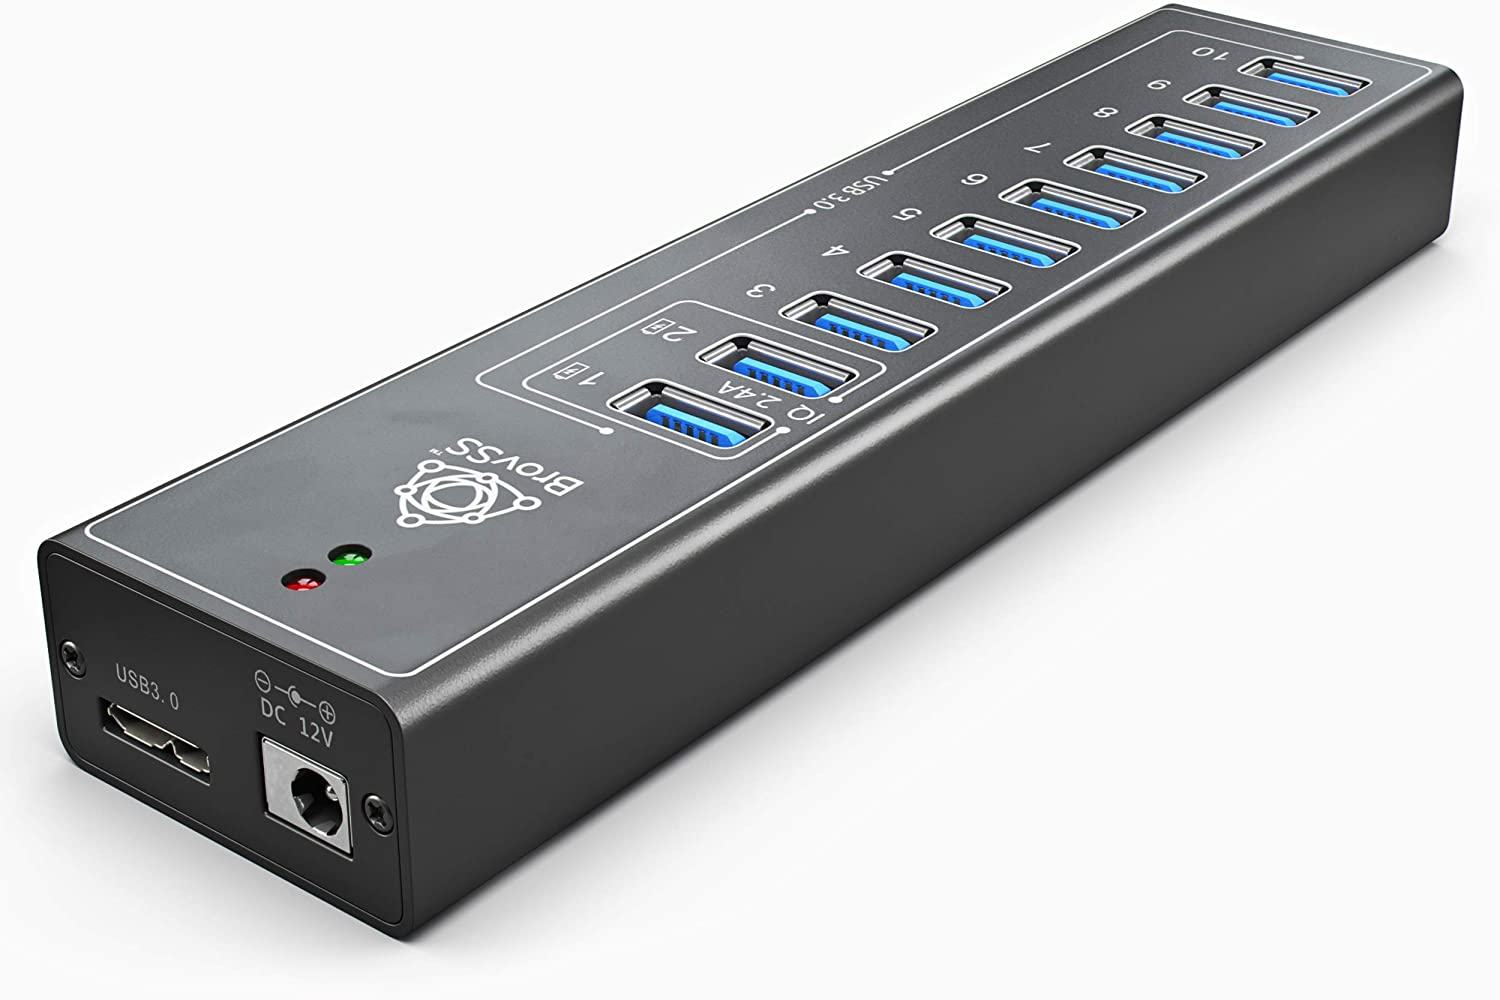 BrovSS: 10 Port Powered USB 3.0 Hub Aluminum with 4 IQ Ports - USB 3 Splitter with 12V 3A 36W Power Adapter. Connect up to 10 Electronics and USB peripherals (Black)